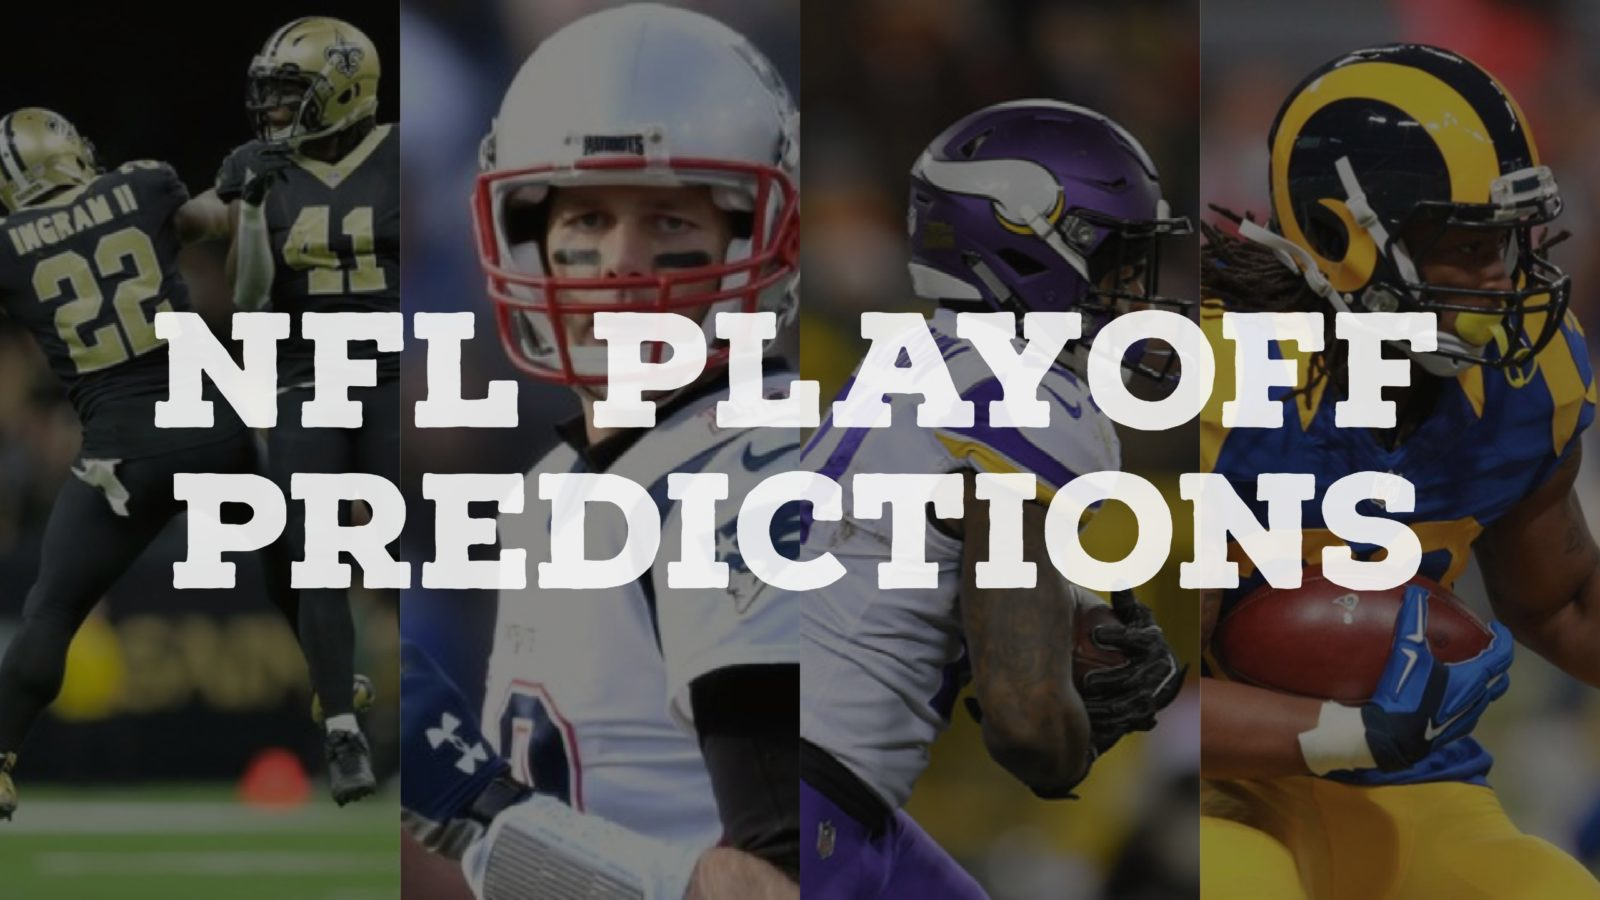 Football Playoff Rankings Out Top >> Predicting the Entire NFL Playoff Bracket + Super Bowl LII Winner